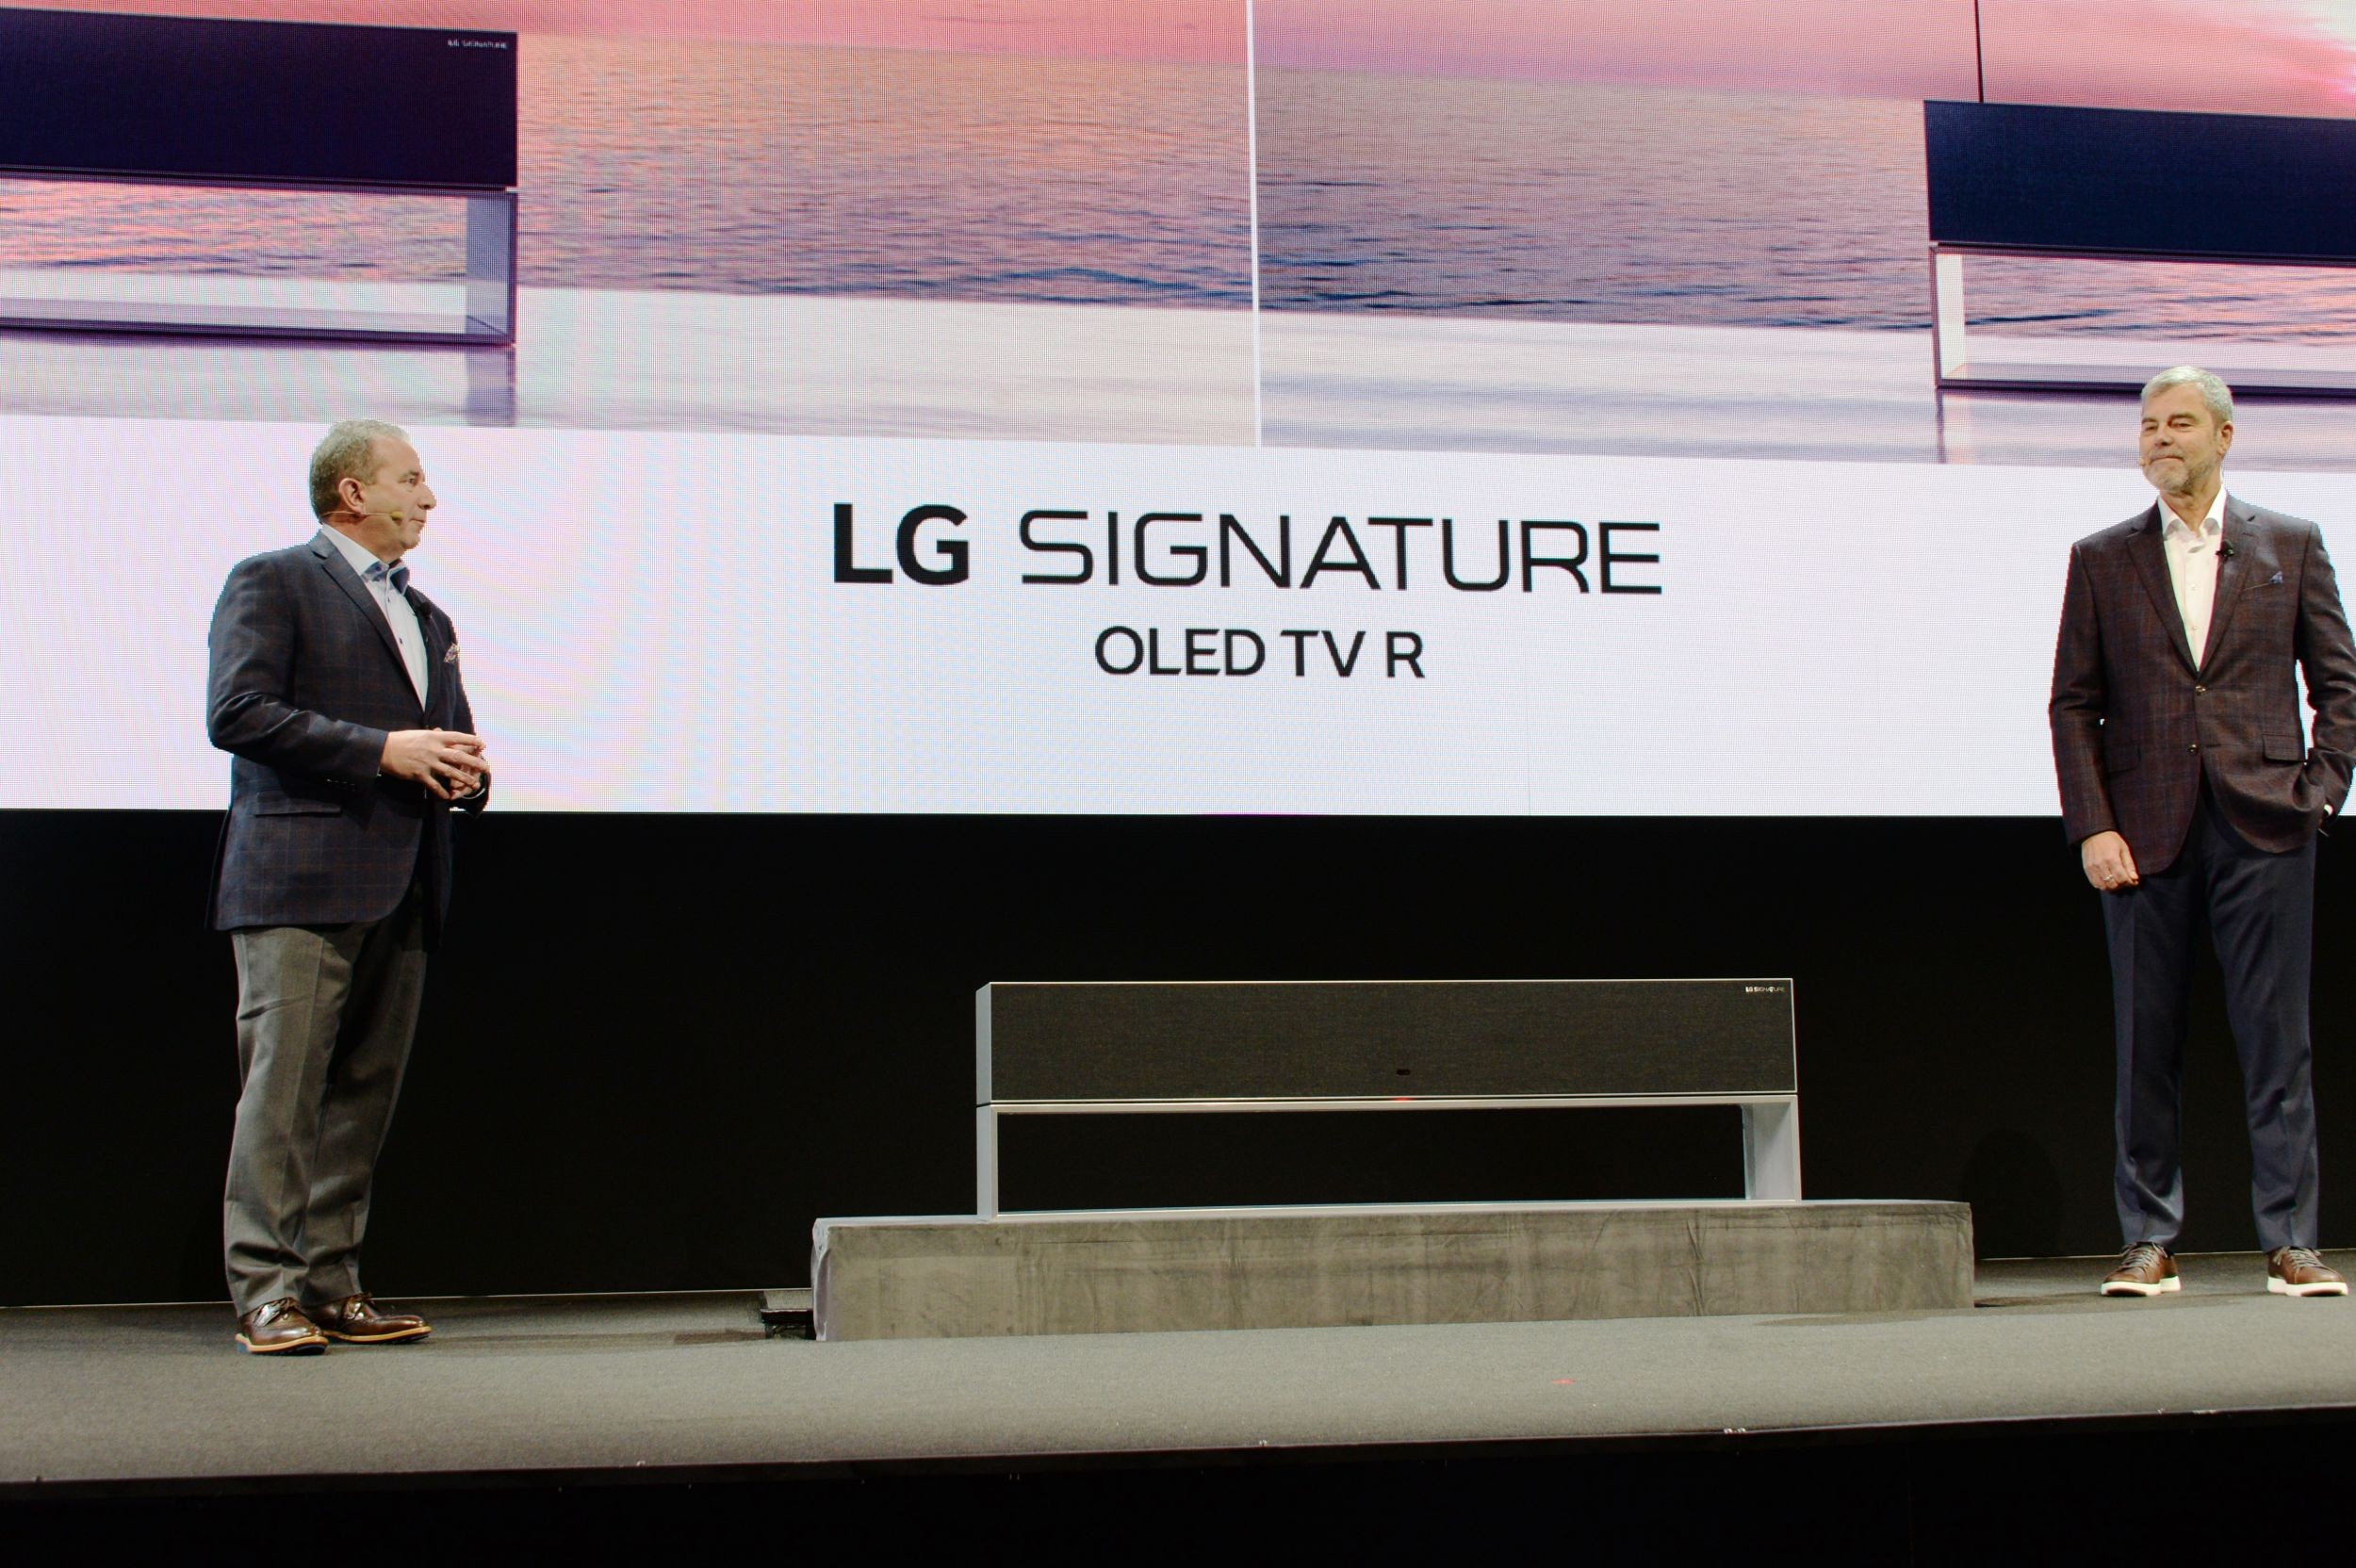 David VanderWall, Senior Vice President of Marketing at LG Electronics USA and Tim Alessi Senior Director of Product Marketing for Home Entertainment Products at LG Electronics USA introduce the LG SIGNATURE OLED TV R at LG's CES 2019 Press Conference while putting the TV between them.